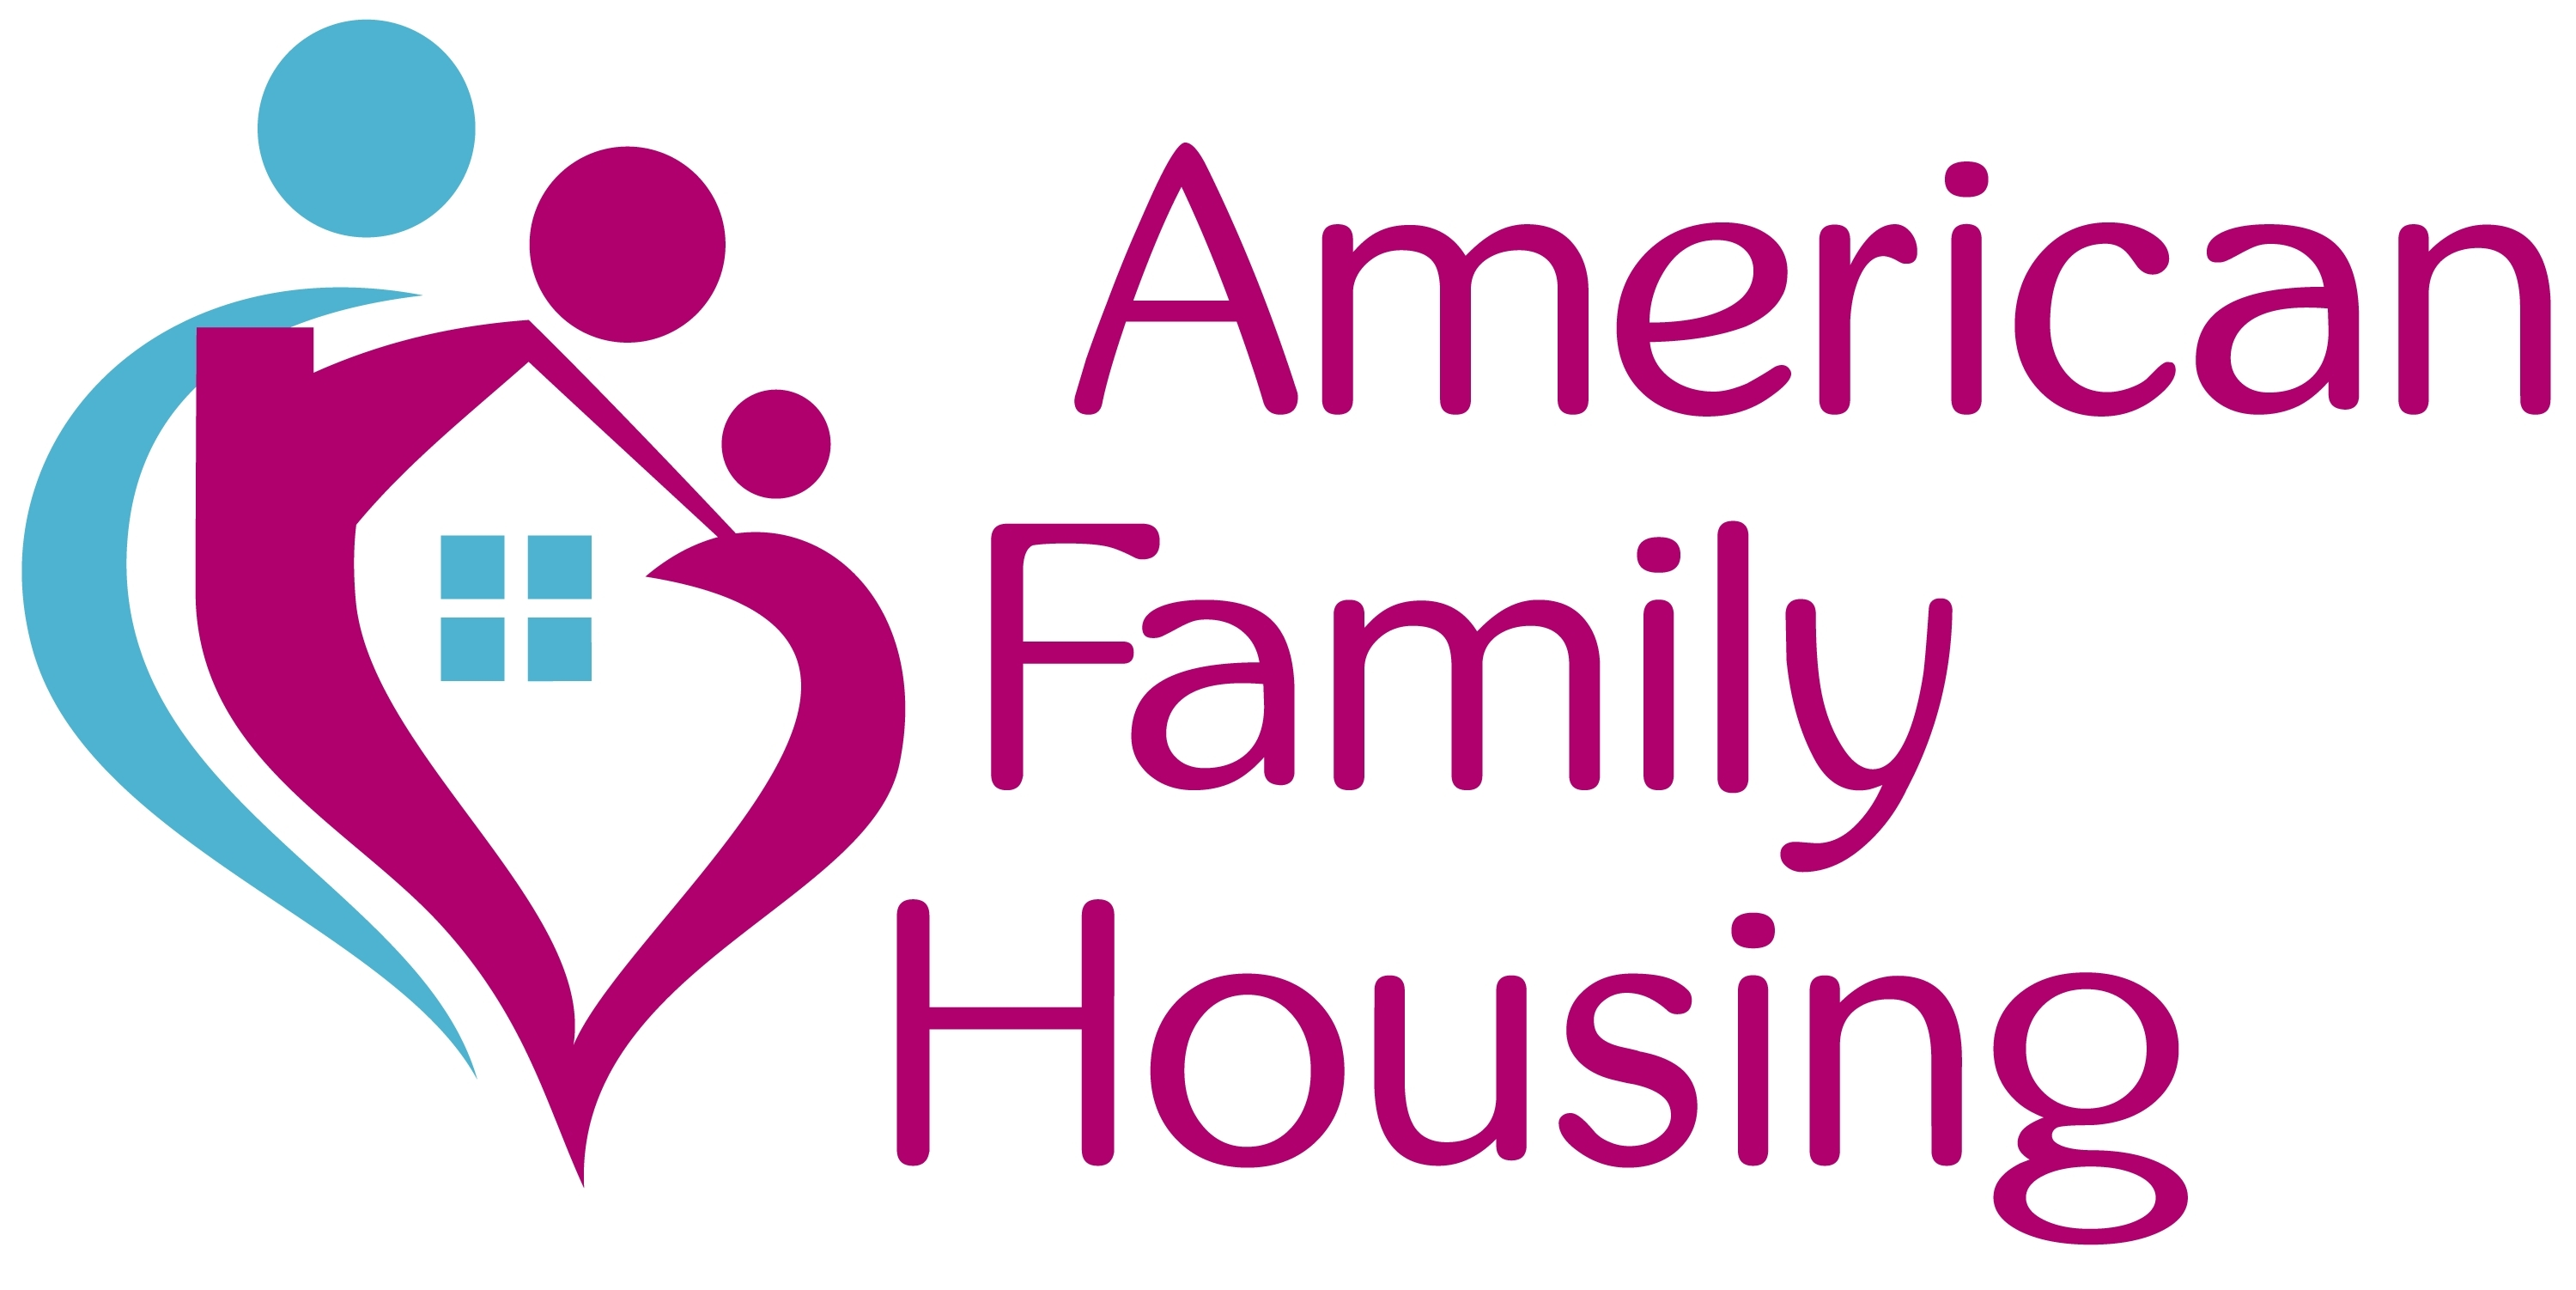 American Family Housing and Wells Fargo to Install Solar